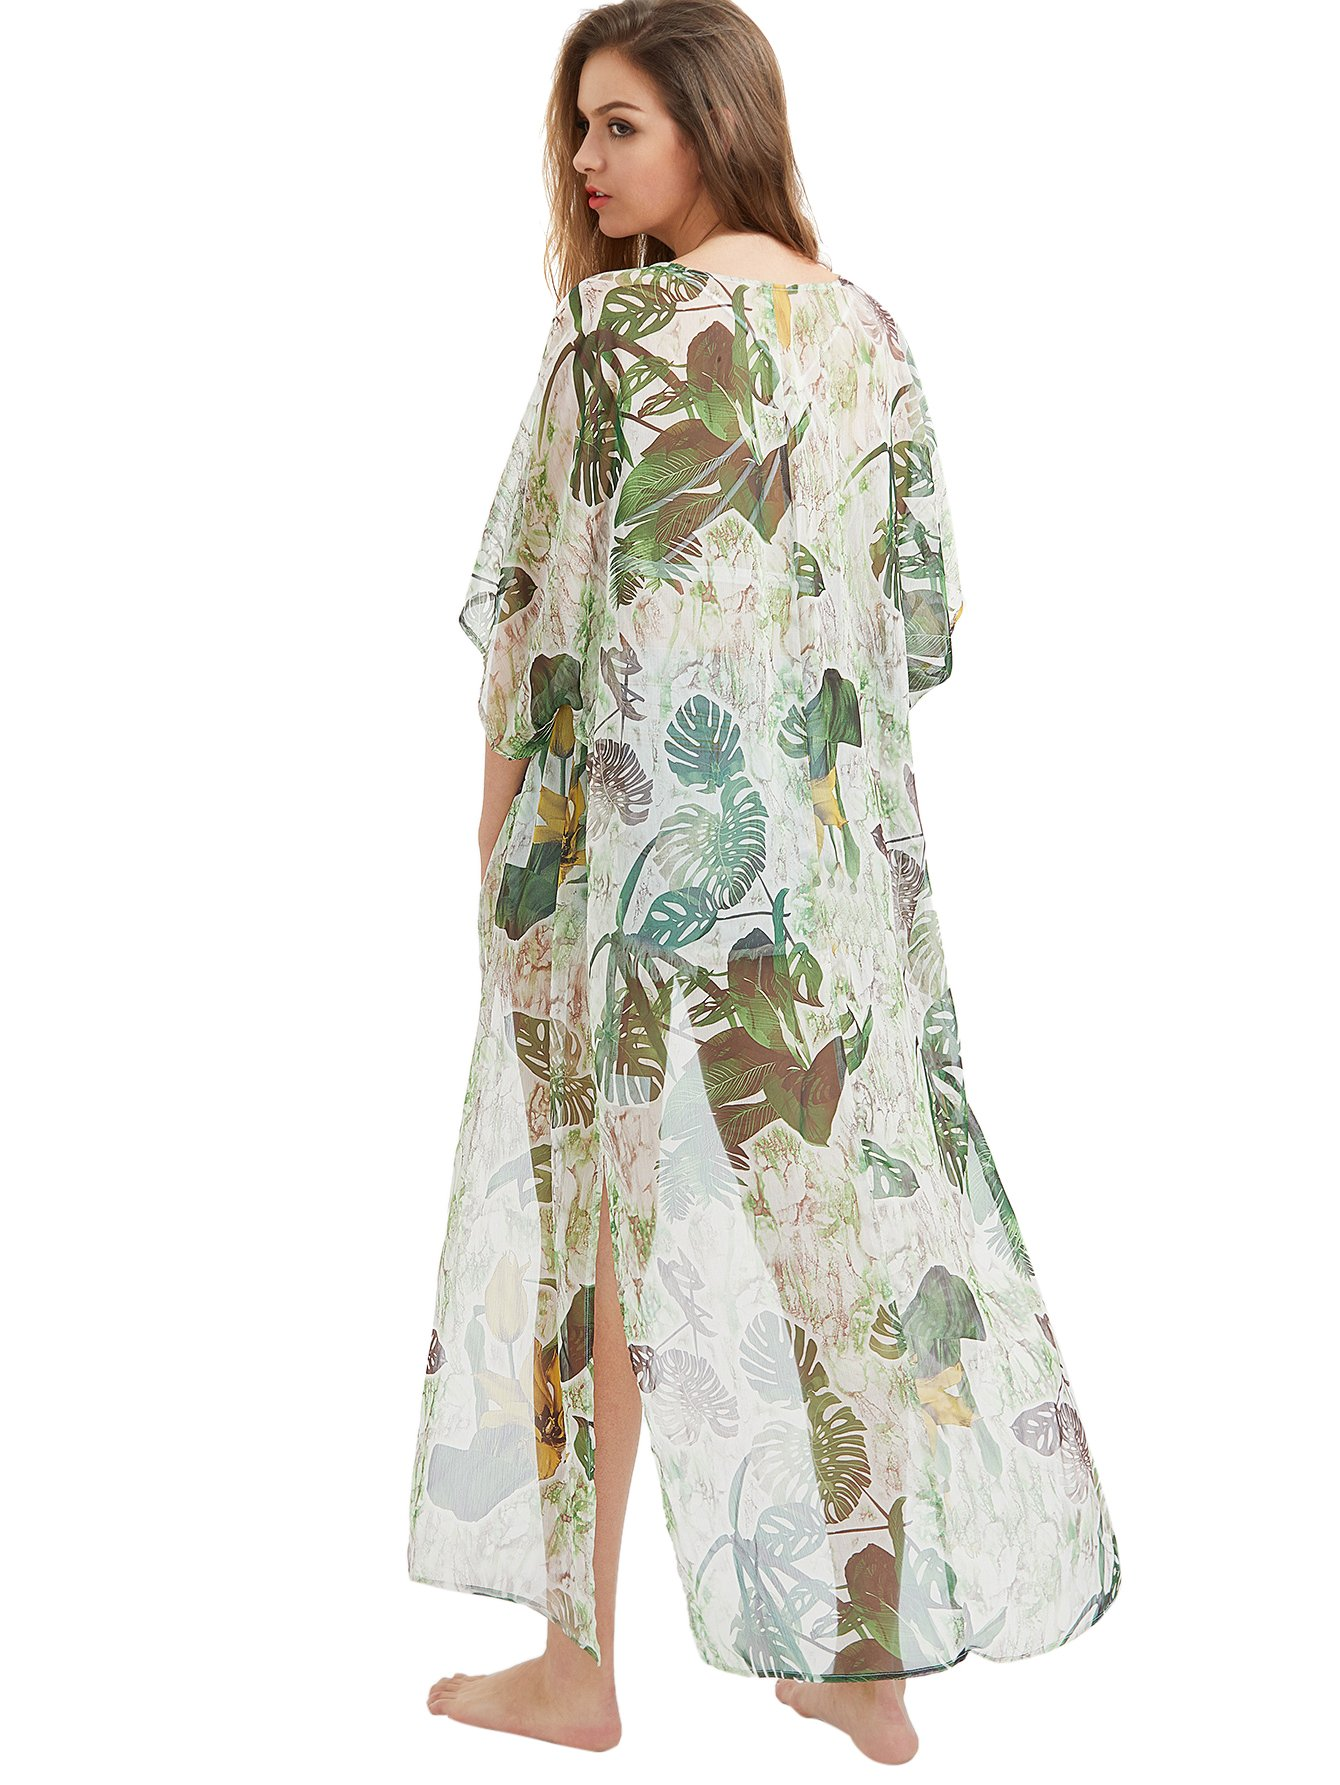 2a7cb601e79 SweatyRocks Women s Flowy Kimono Cardigan Open Front Maxi Dress   Cover-Ups    Clothing